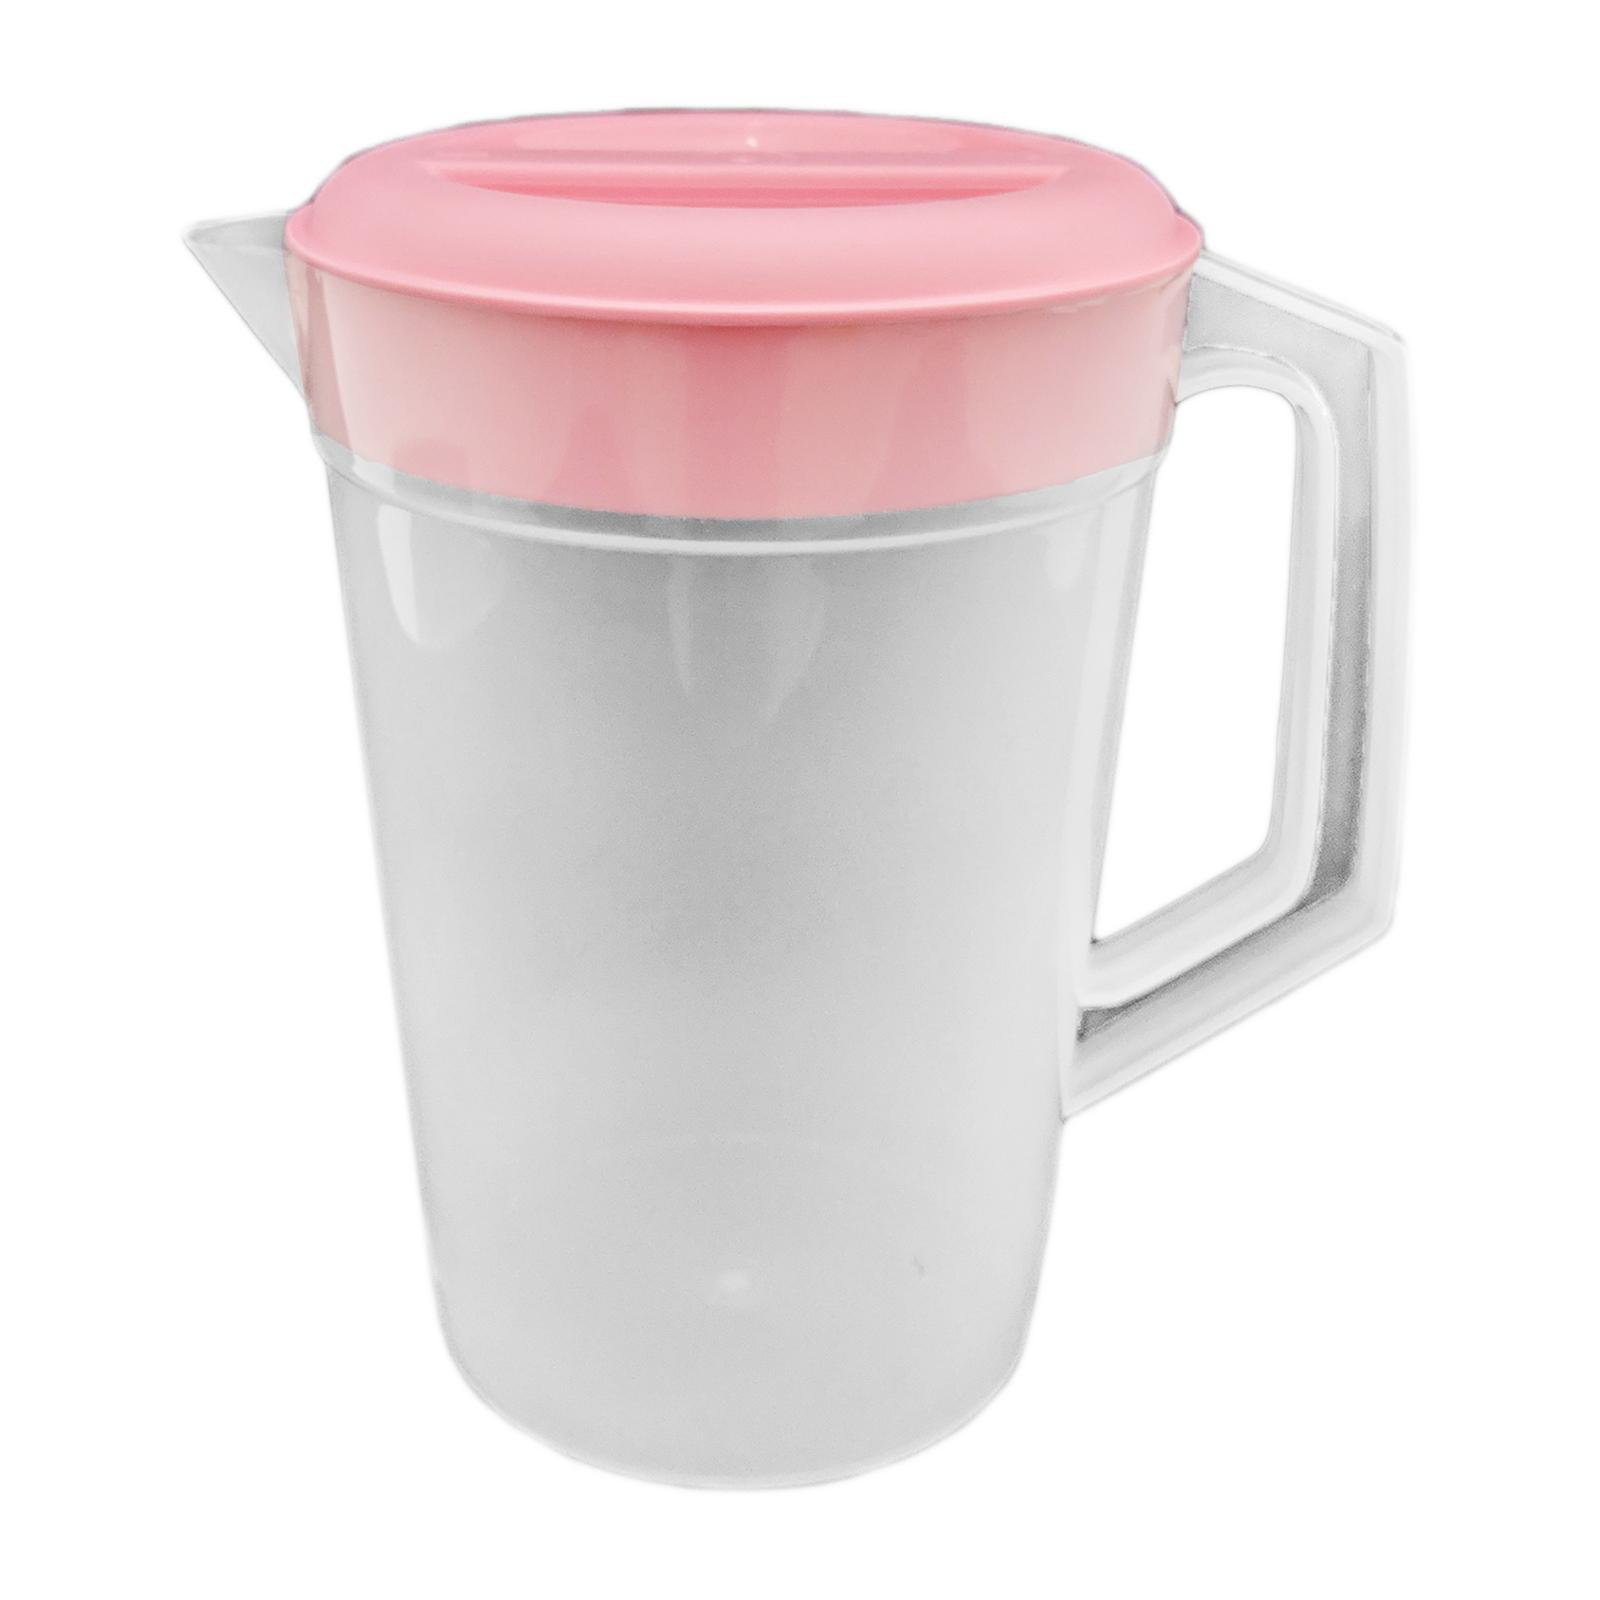 Sitbo Plastic Juice And Water Jug 1.5 L (Pink)